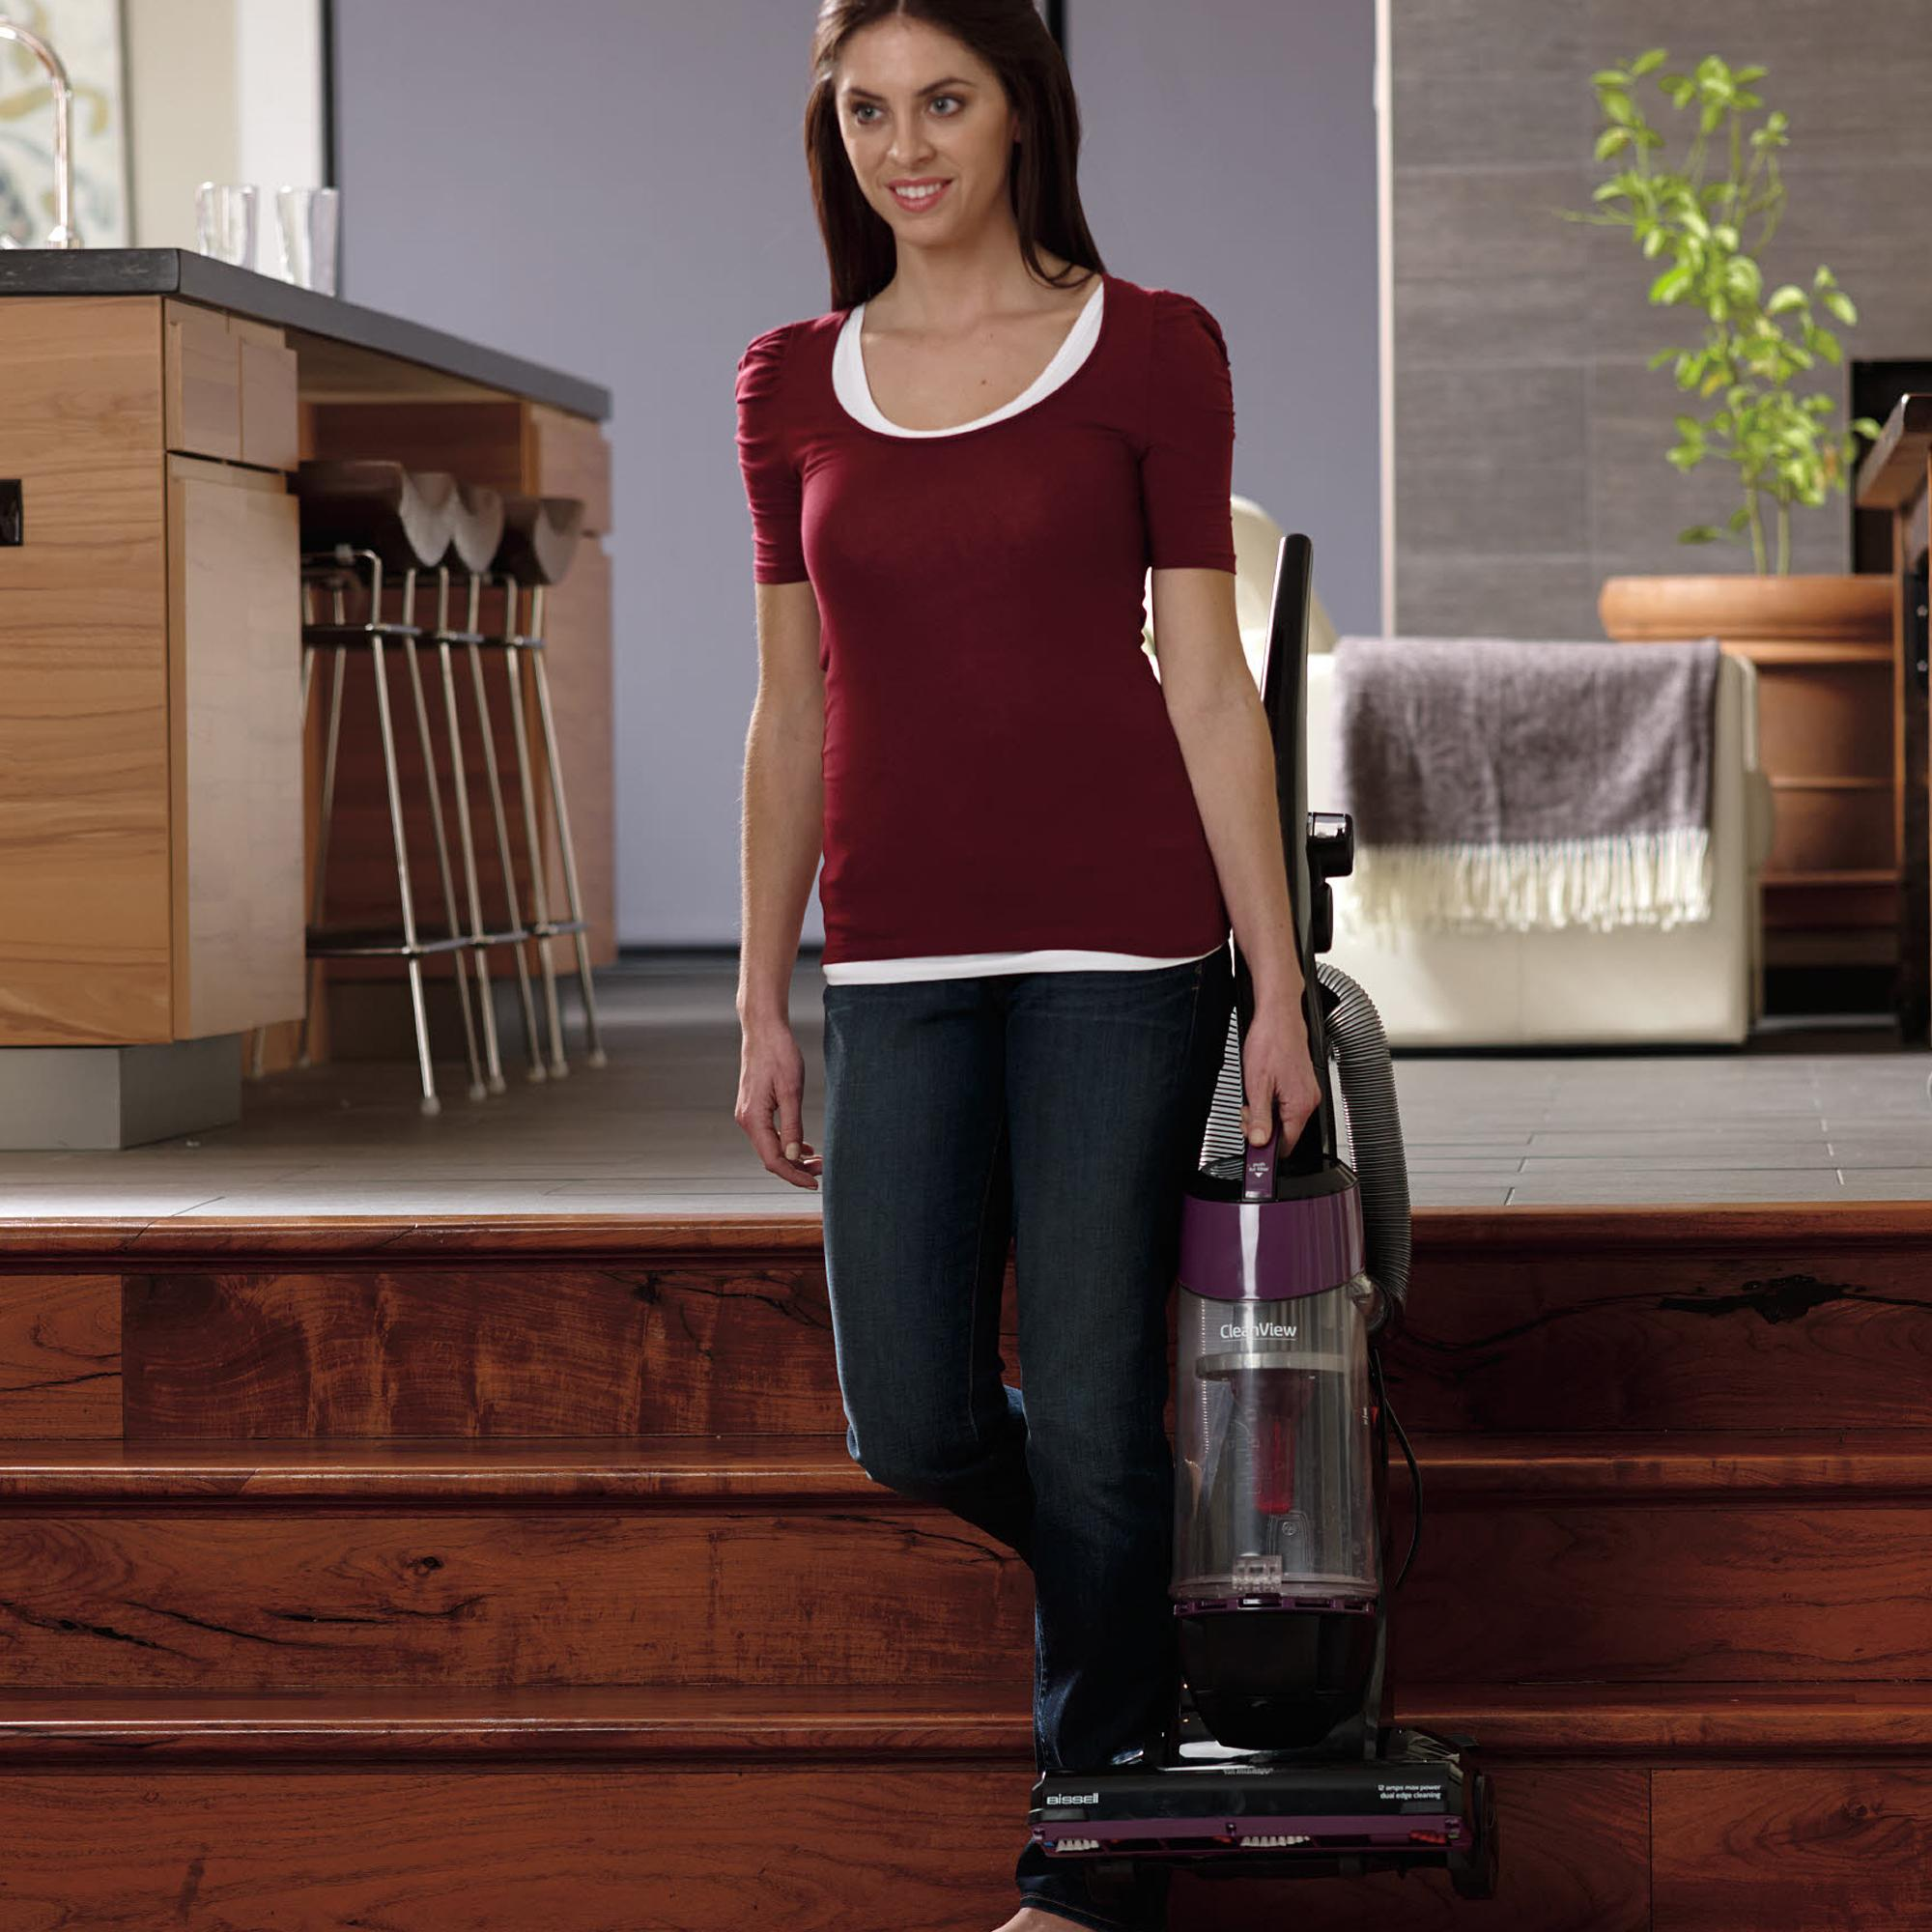 BISSELL 9595A upright Vacuum with OnePass